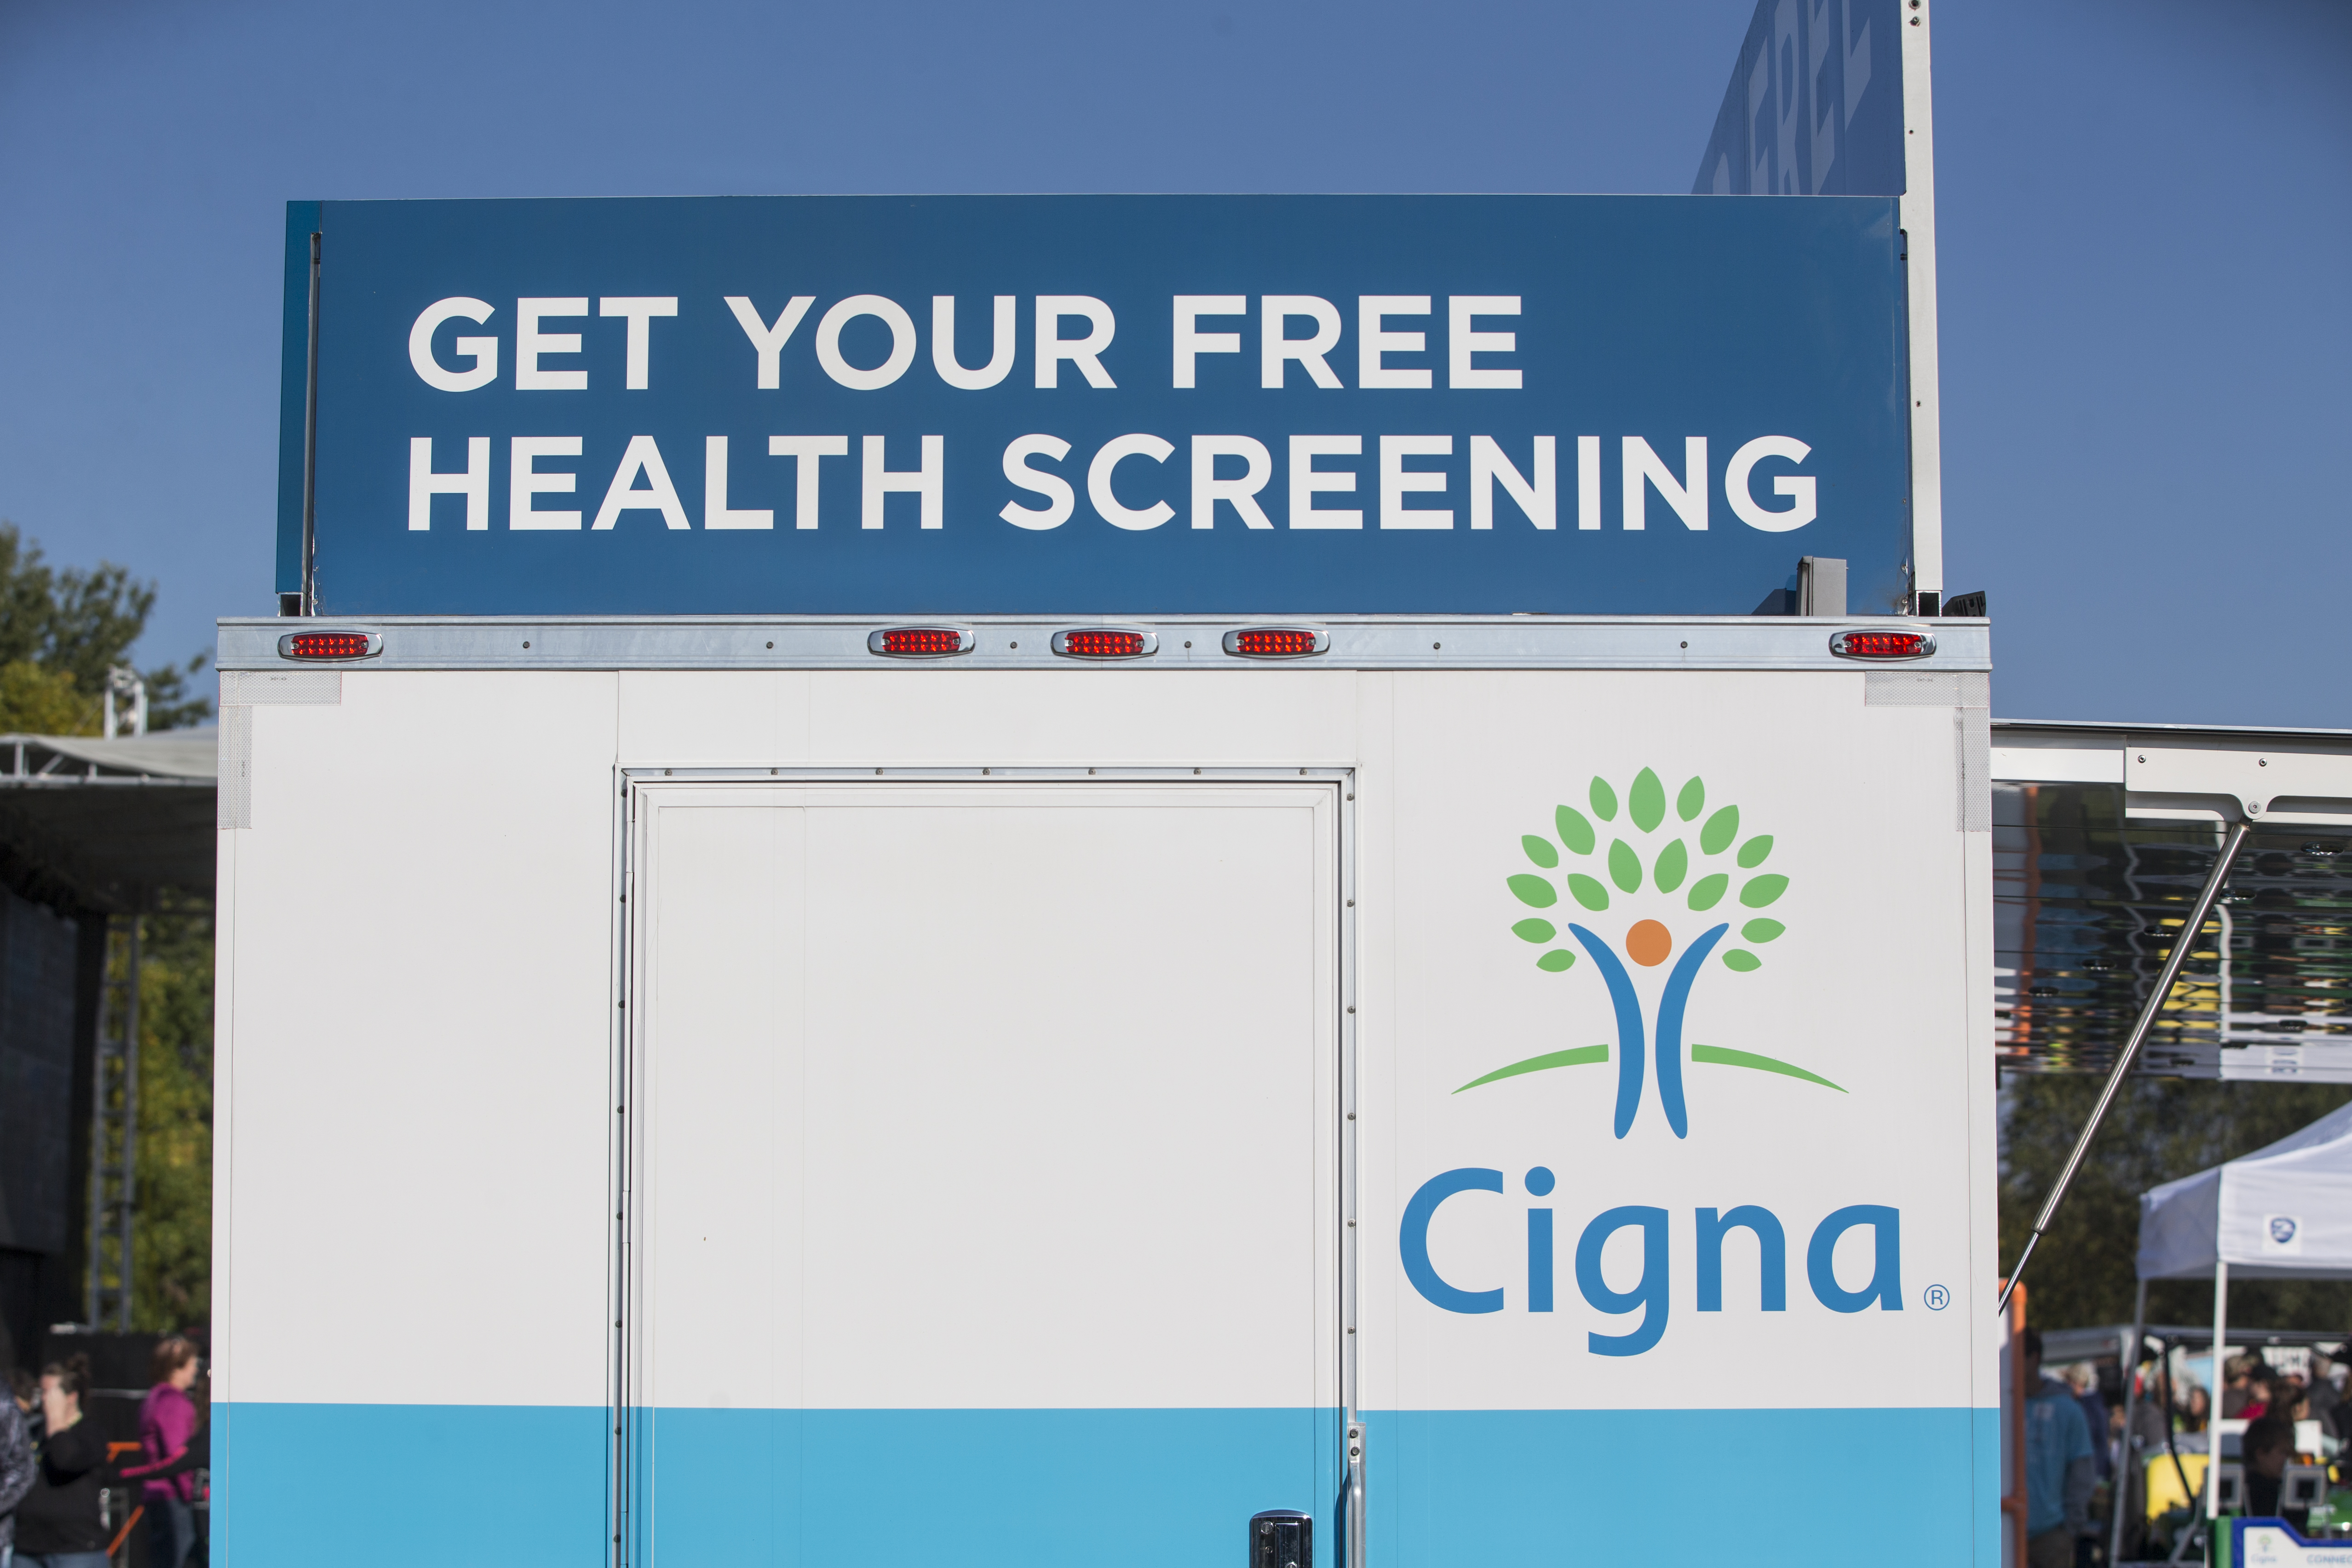 LEWISTON, ME - OCTOBER 07: Signage on the Cigna Foundation Health Improvement Tour Mobile Unit at the Annual Dempsey Challenge on October 7, 2017 in Lewiston, Maine. (Scott Eisen/Getty Images for Patrick Dempsey Center)